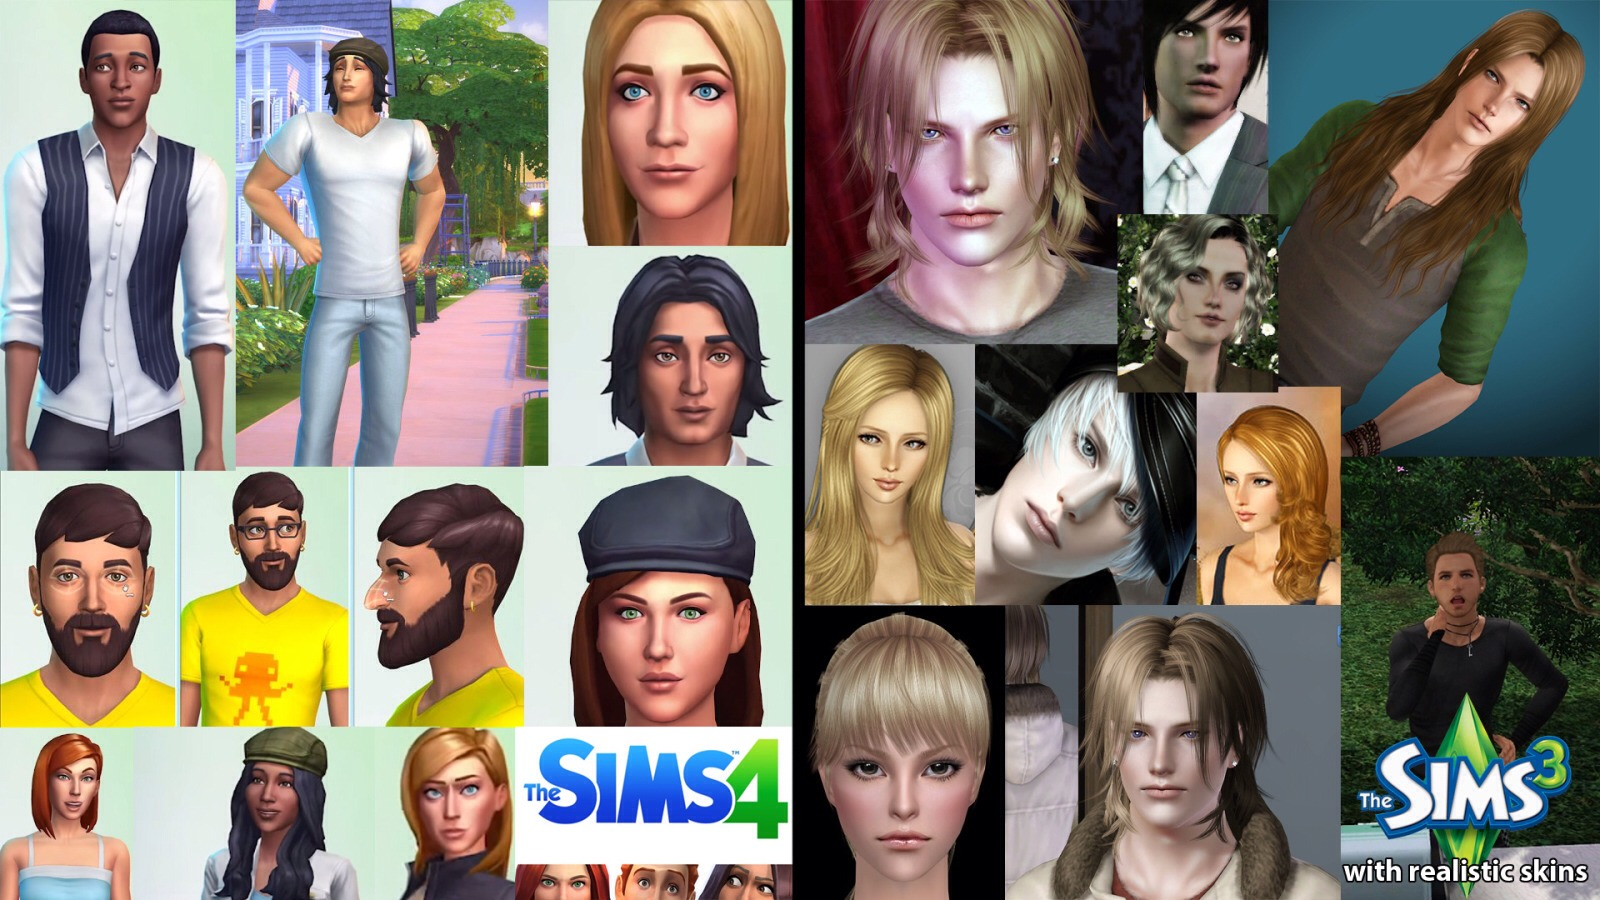 The Sims 4 is all about the Sim. In the new Sims 4, Create a Sim has all new features. Rather than sliders, the player physically controls how the body features will look. Also, there are many new traits to choose, and now able to choose many more.